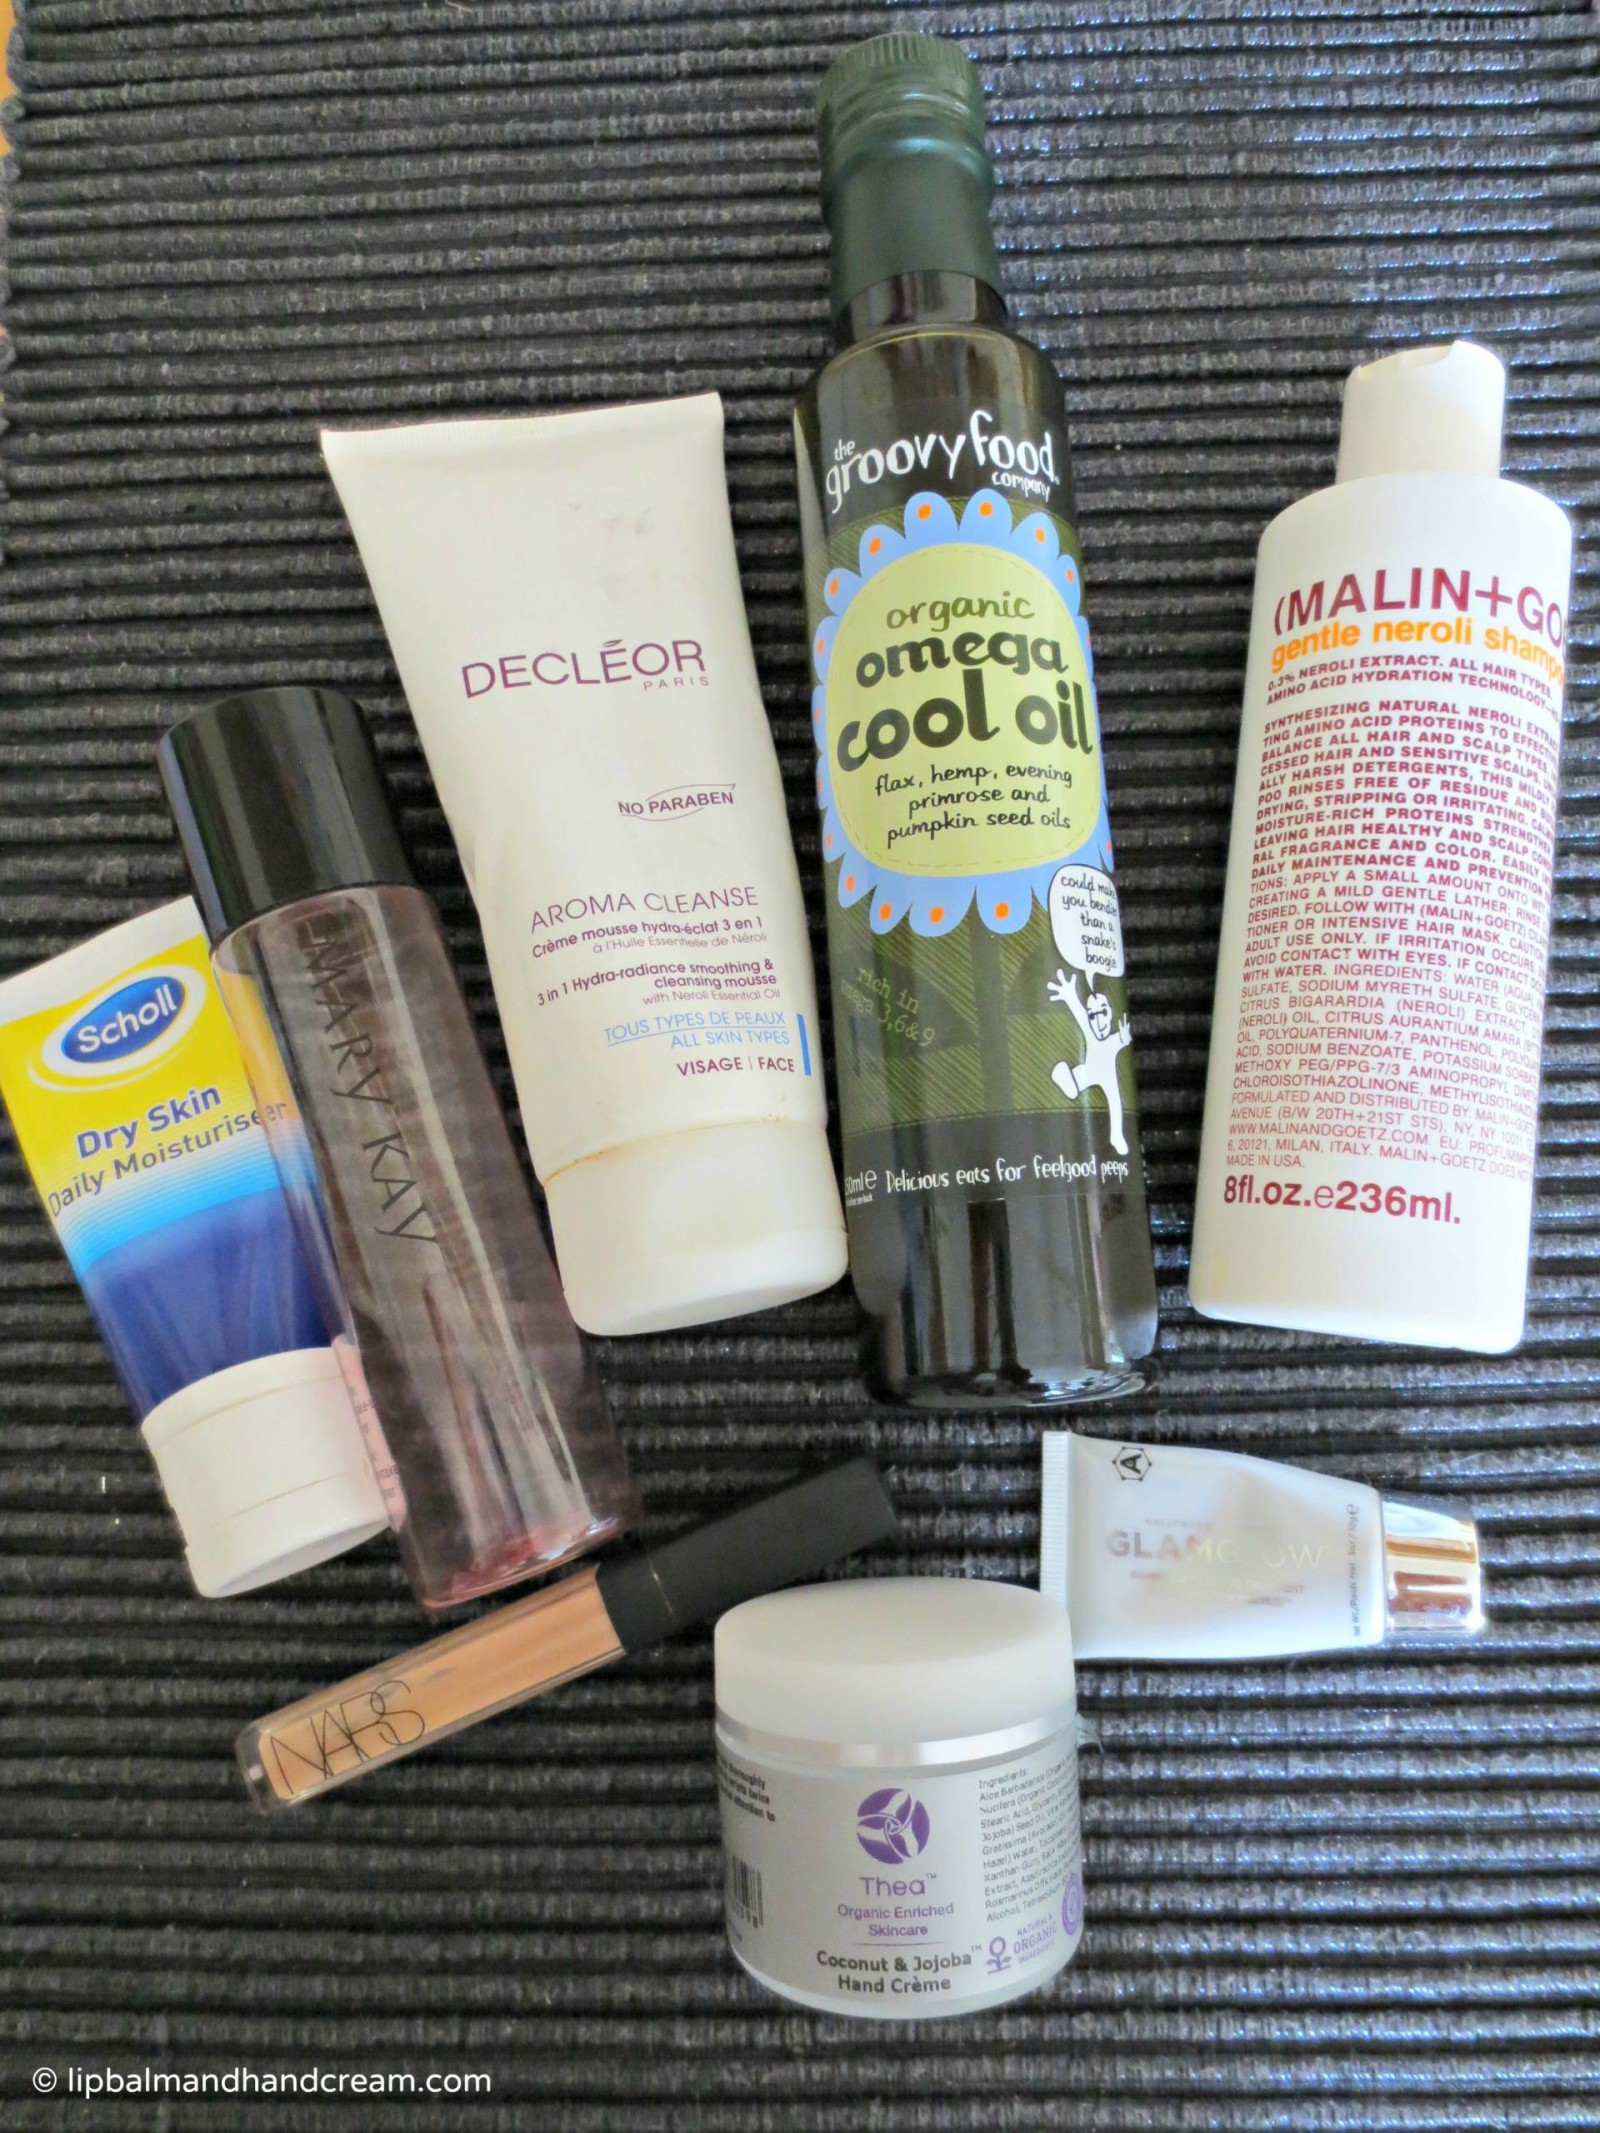 June's empties are from NARS, Scholl, Mary Kay, Decléor, Groovy food, Malin + Goetz, Glamglow, and Thea